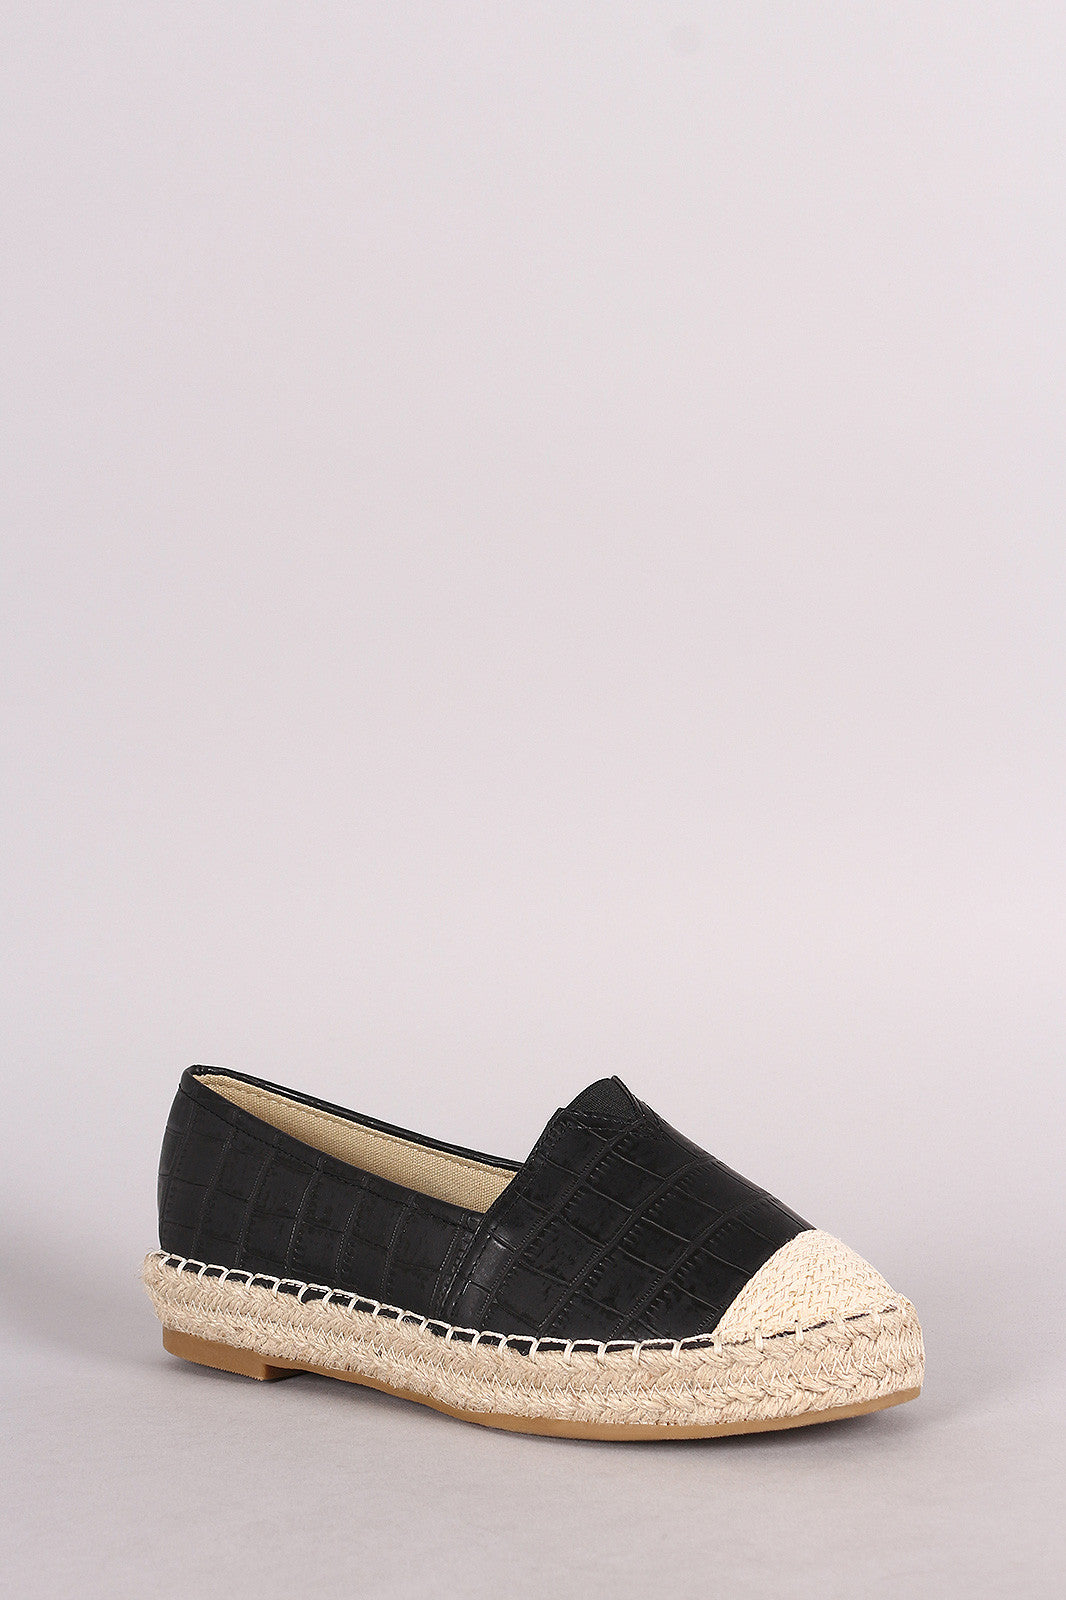 Crocodile Print Braided Espadrille Slip On Loafer Flat - Thick 'N' Curvy Shop - 2